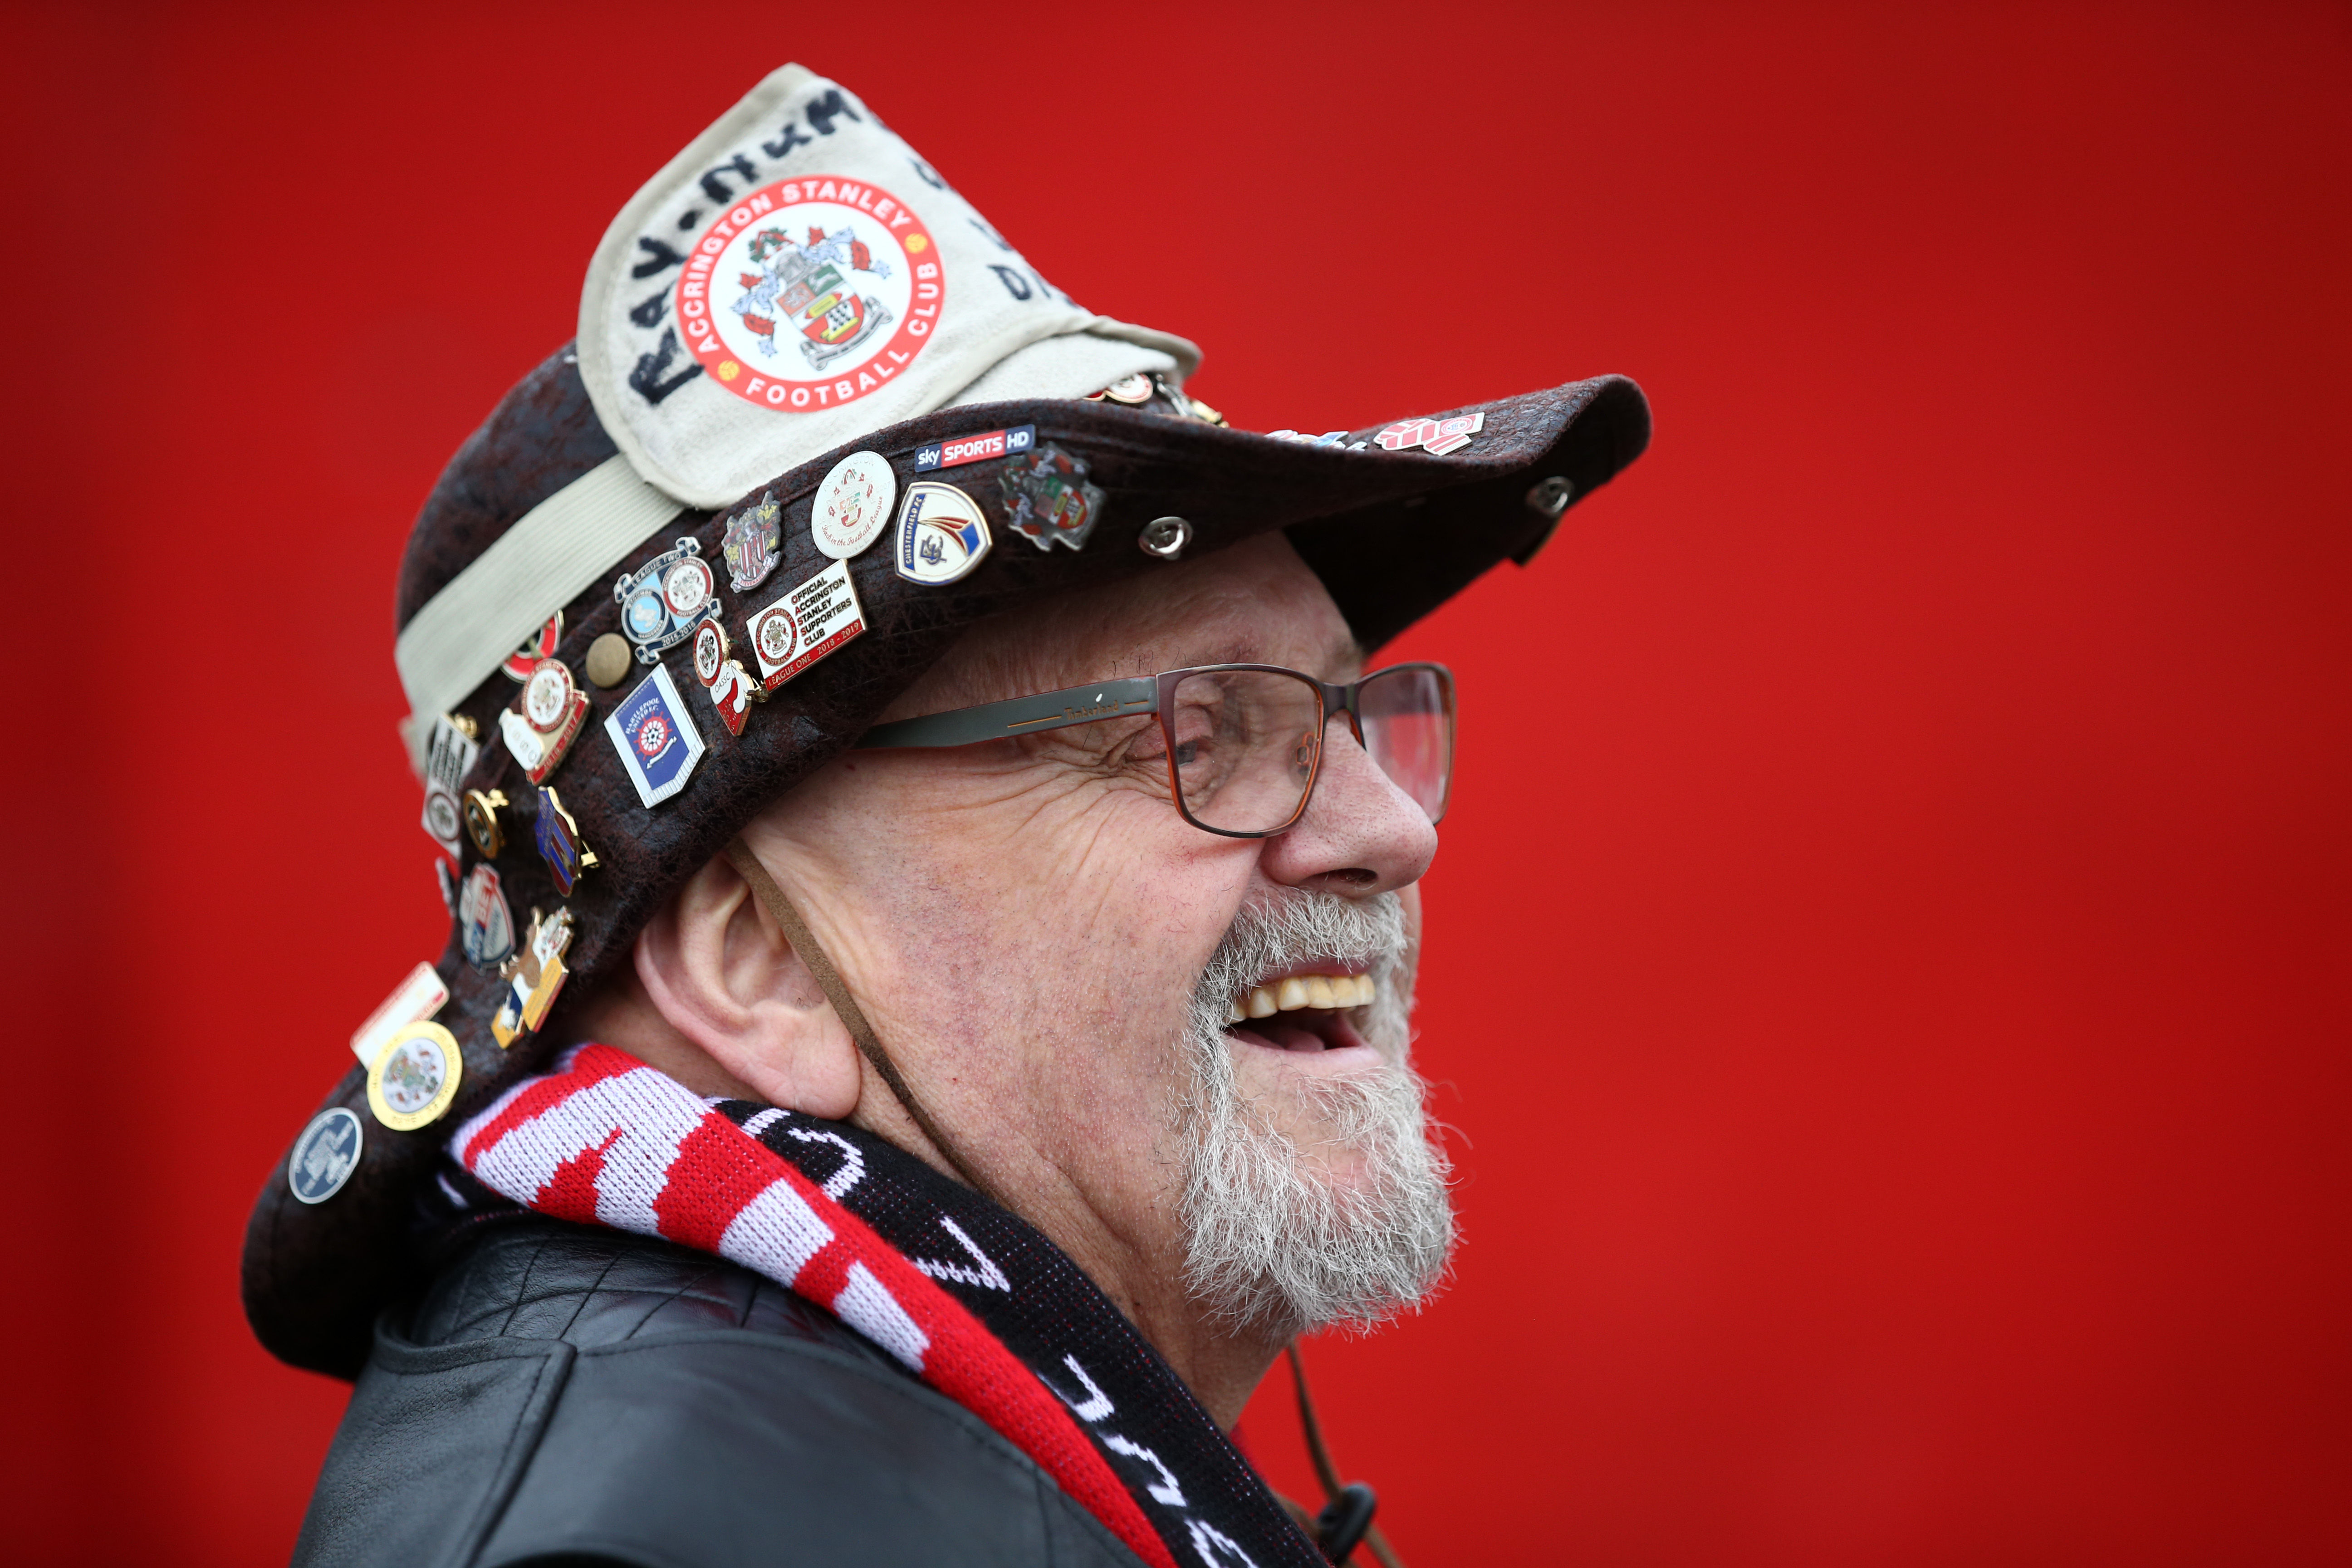 Accrington Stanley v Derby County - FA Cup Fourth Round